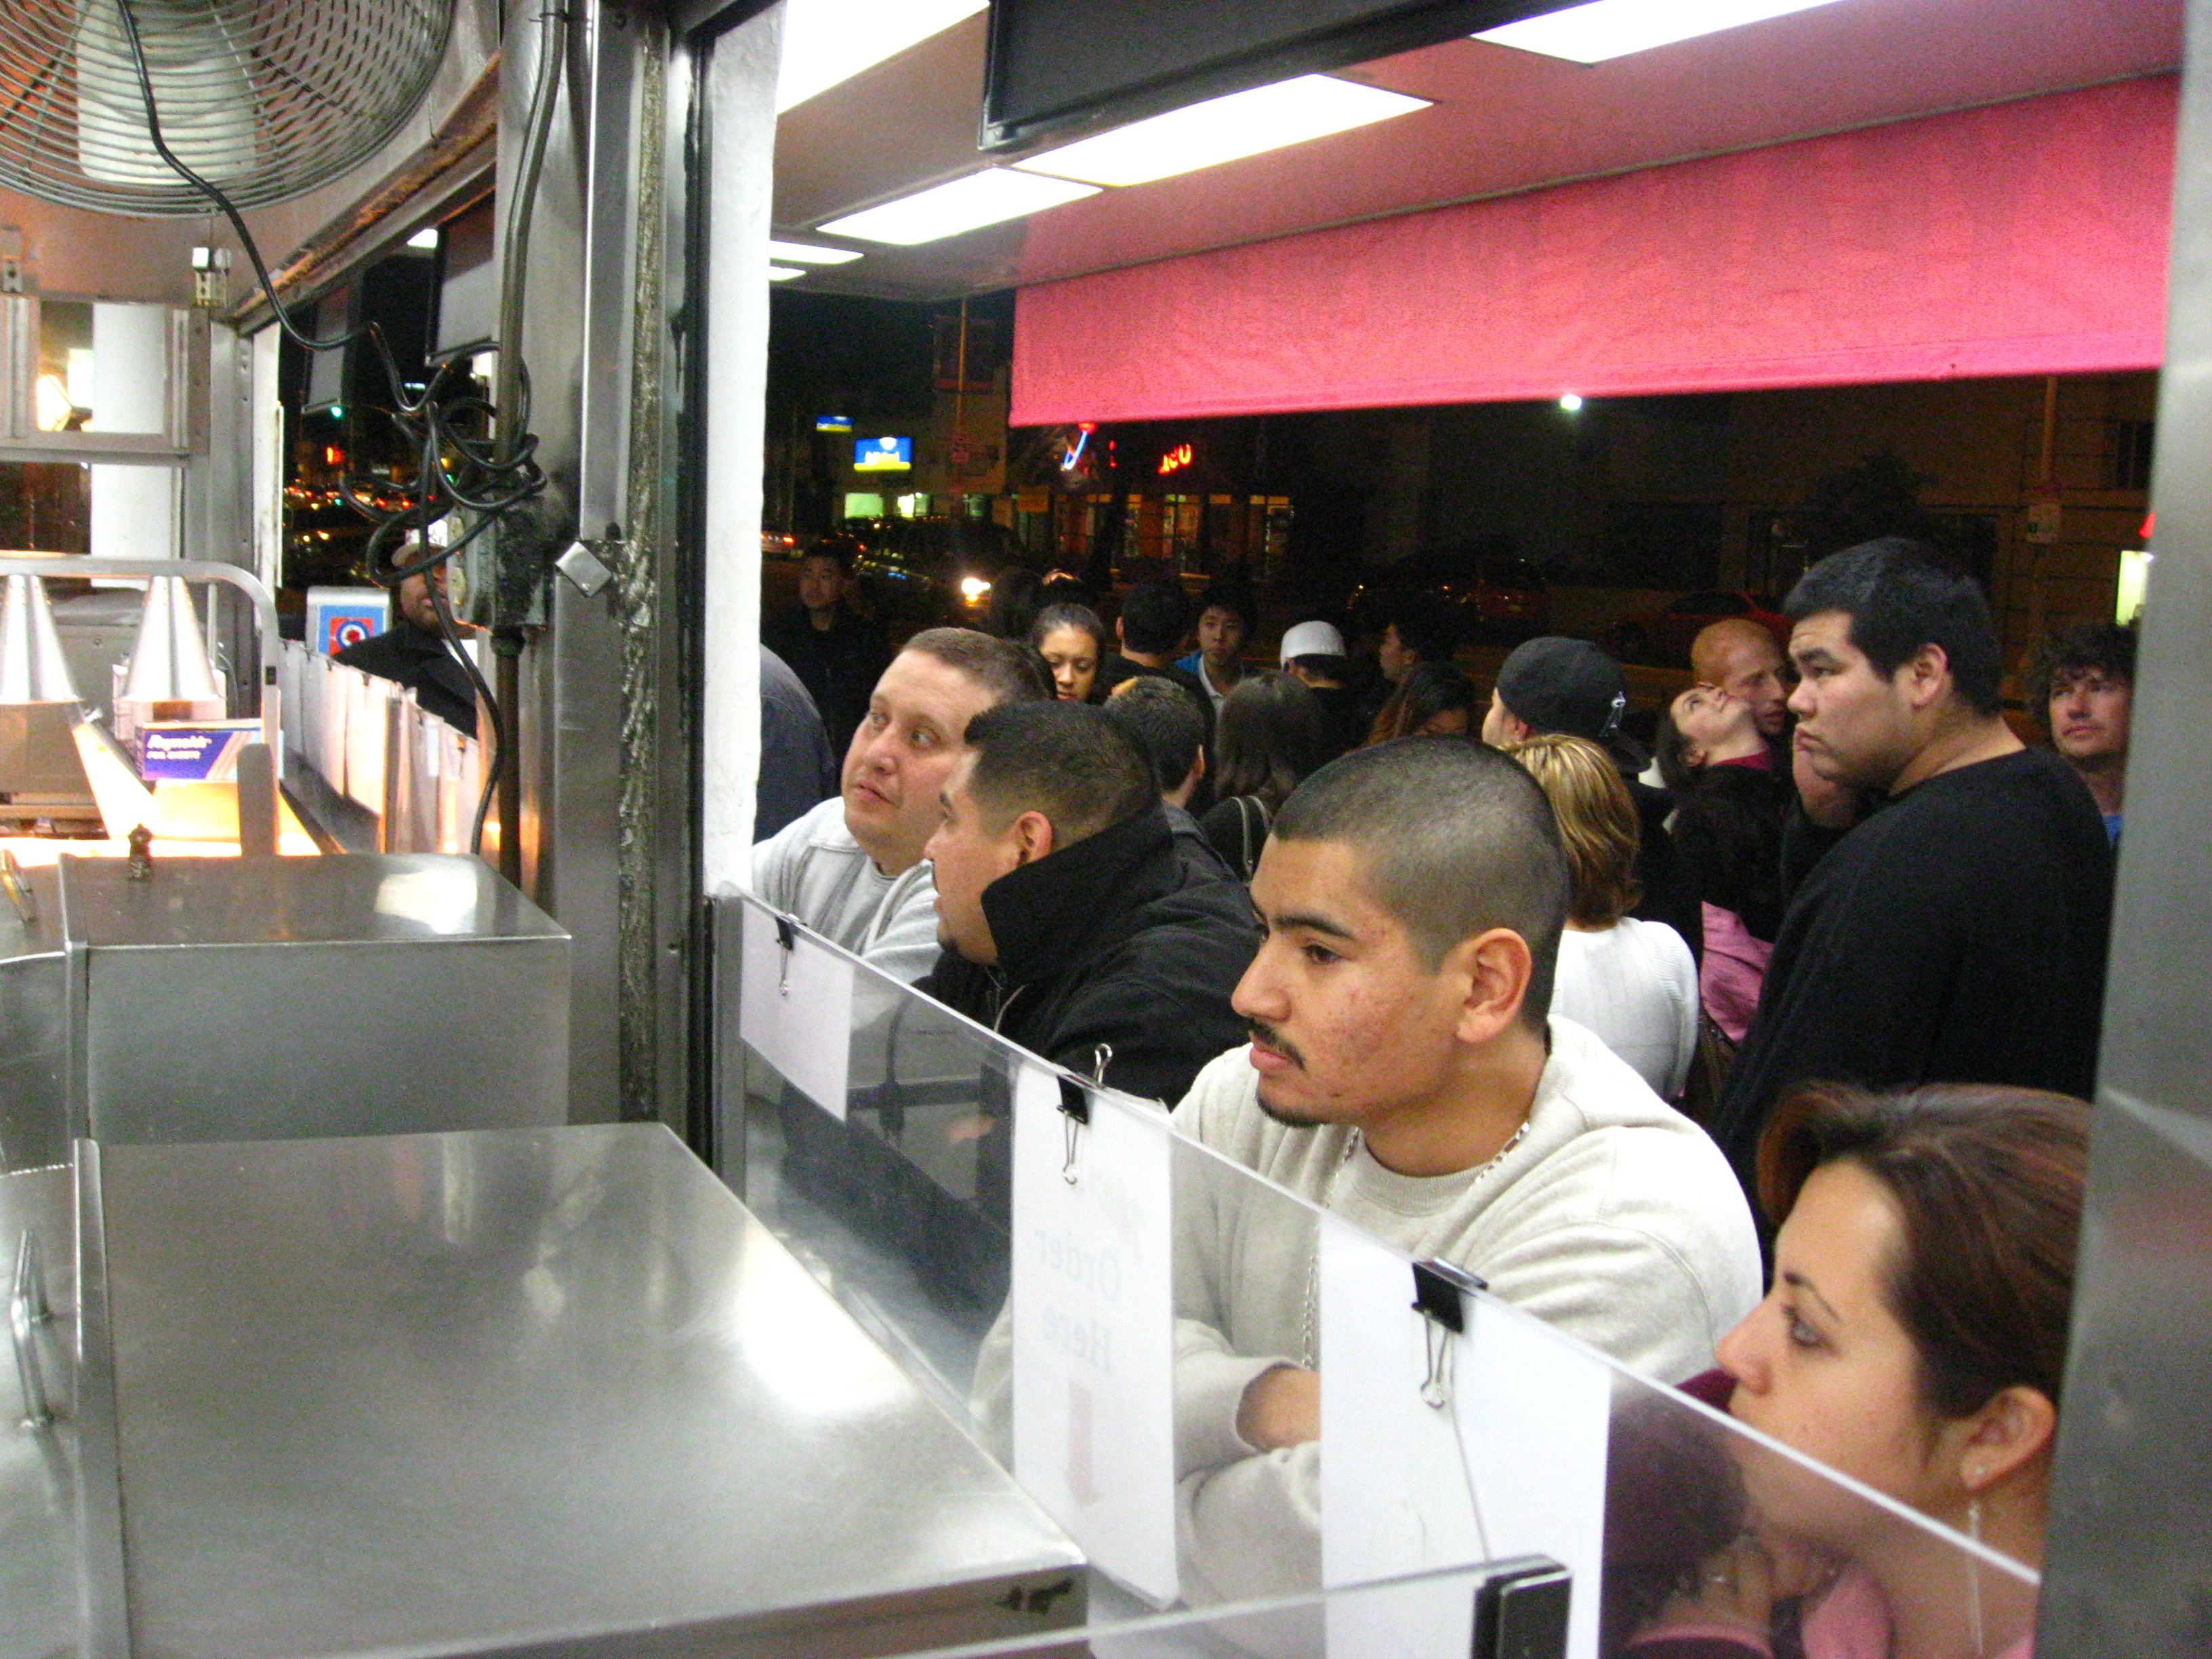 The line is four rows deep. The crowd is quite mixed, everyone loves hot dogs at midnight.